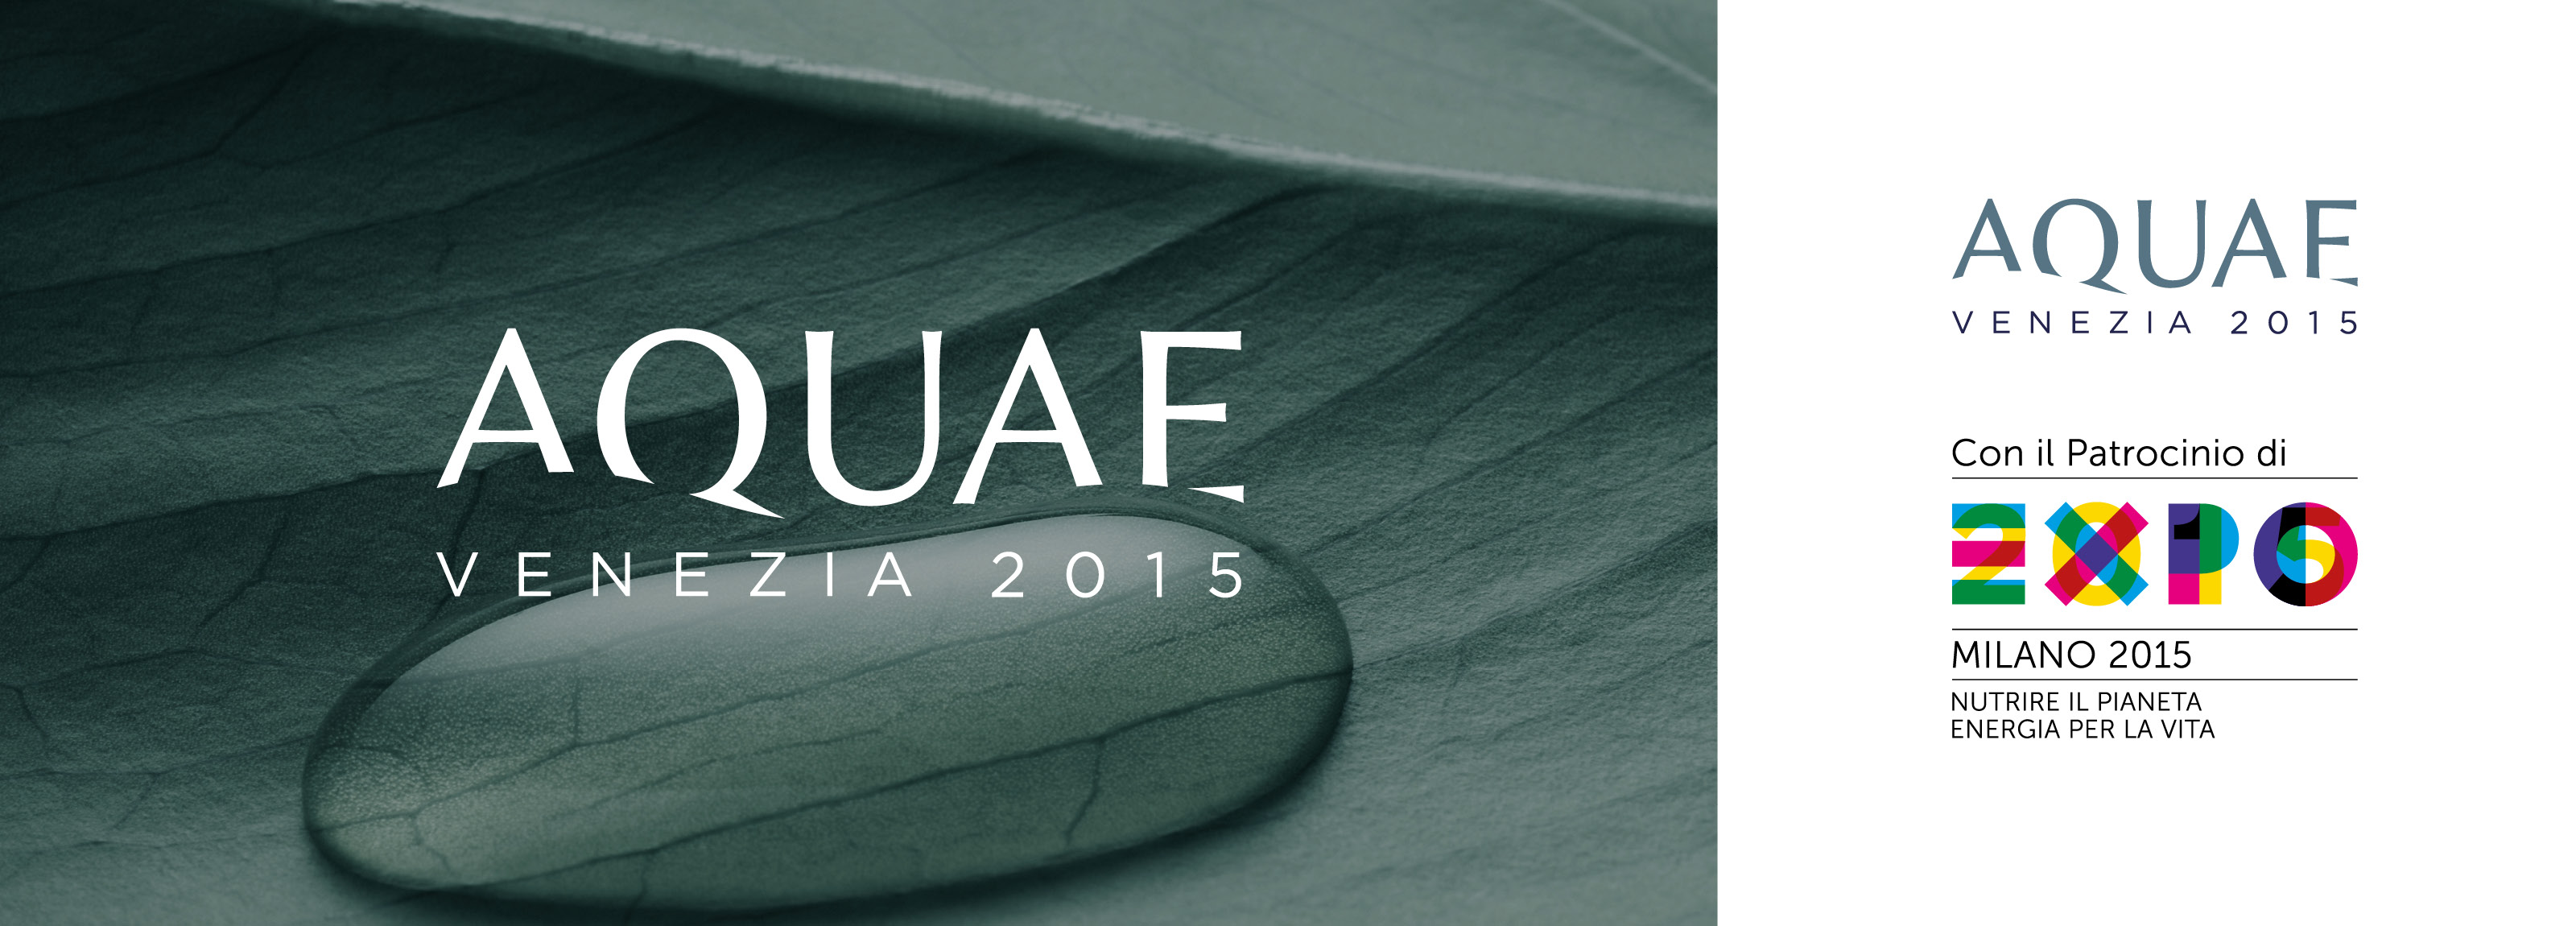 Brand identity and visual design of Hangar Design group for Aquae 2015.